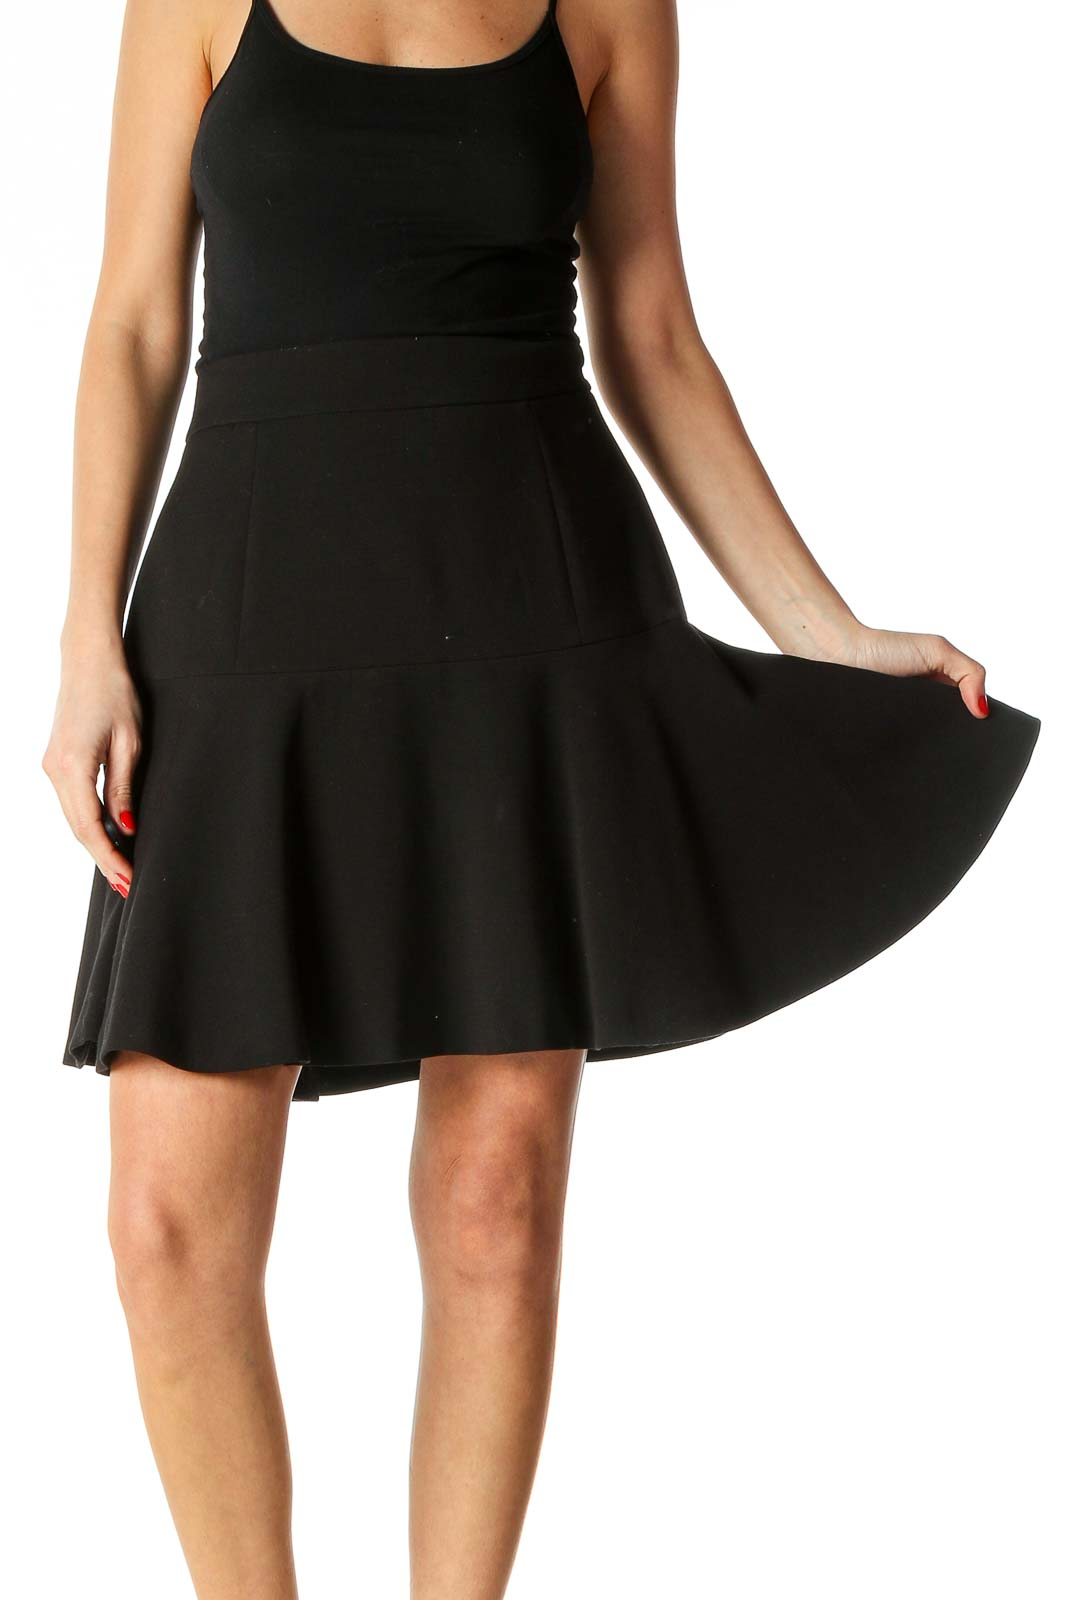 Black Solid Casual A-Line Dress Front